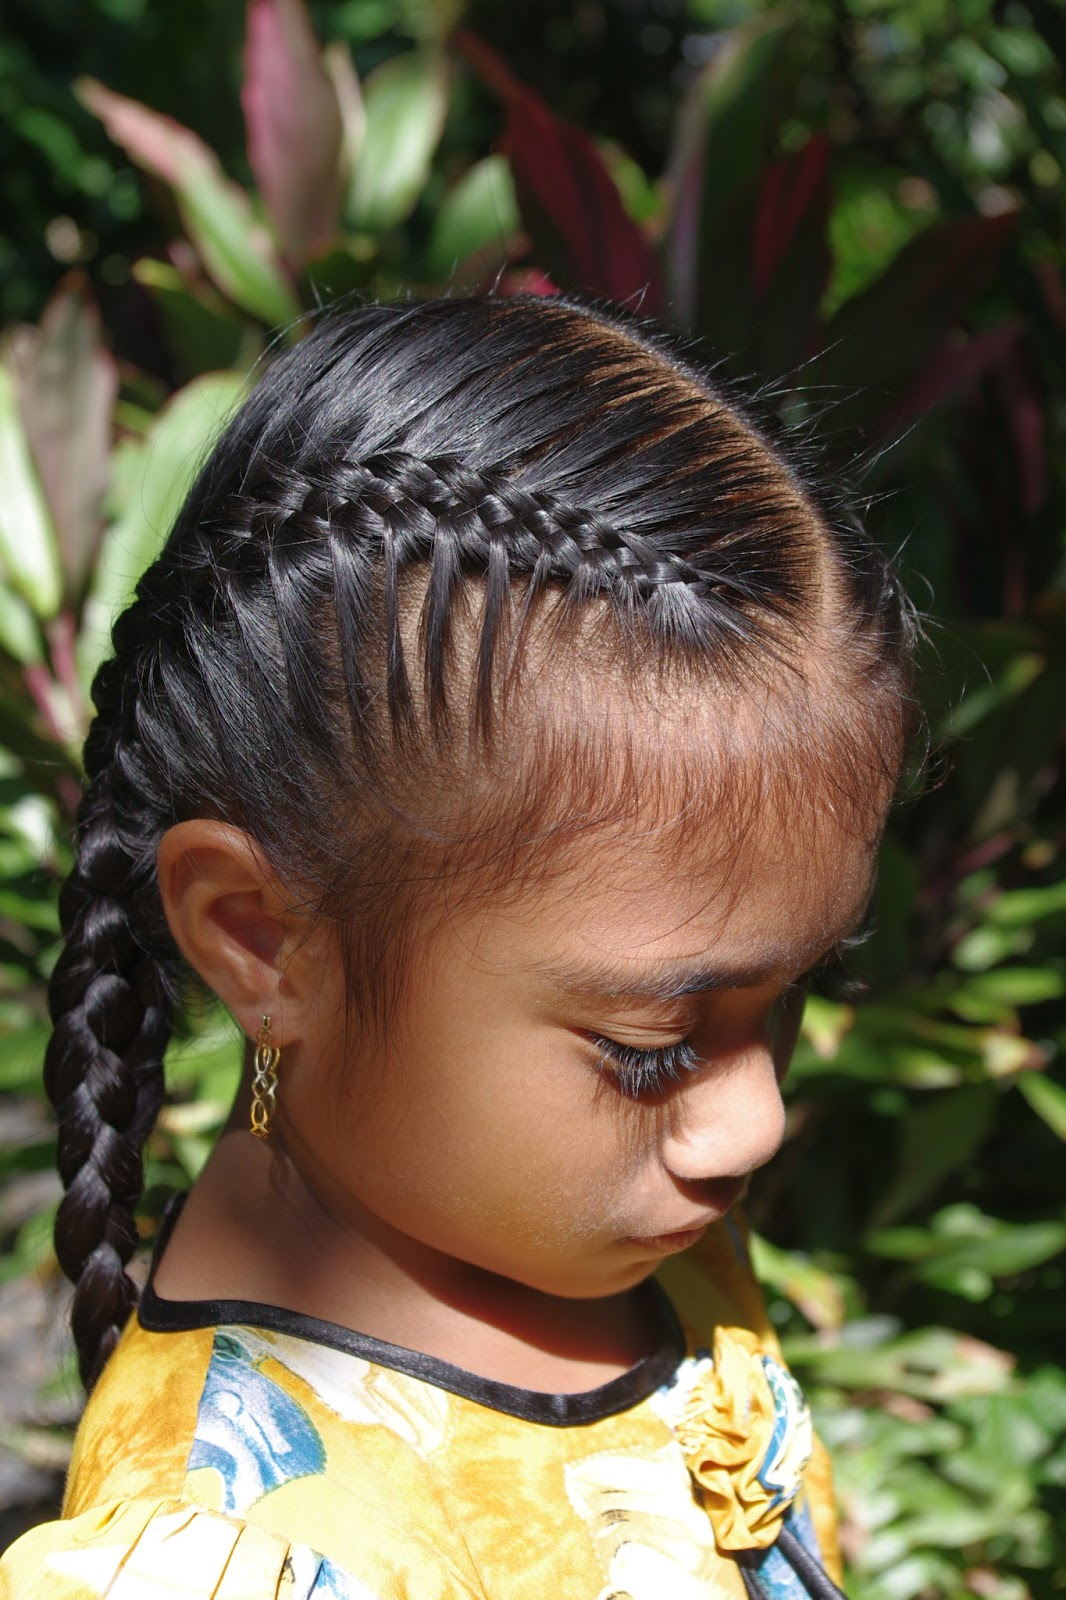 Sensational Braids Amp Hairstyles For Super Long Hair Micronesian Girl Double Hairstyles For Women Draintrainus